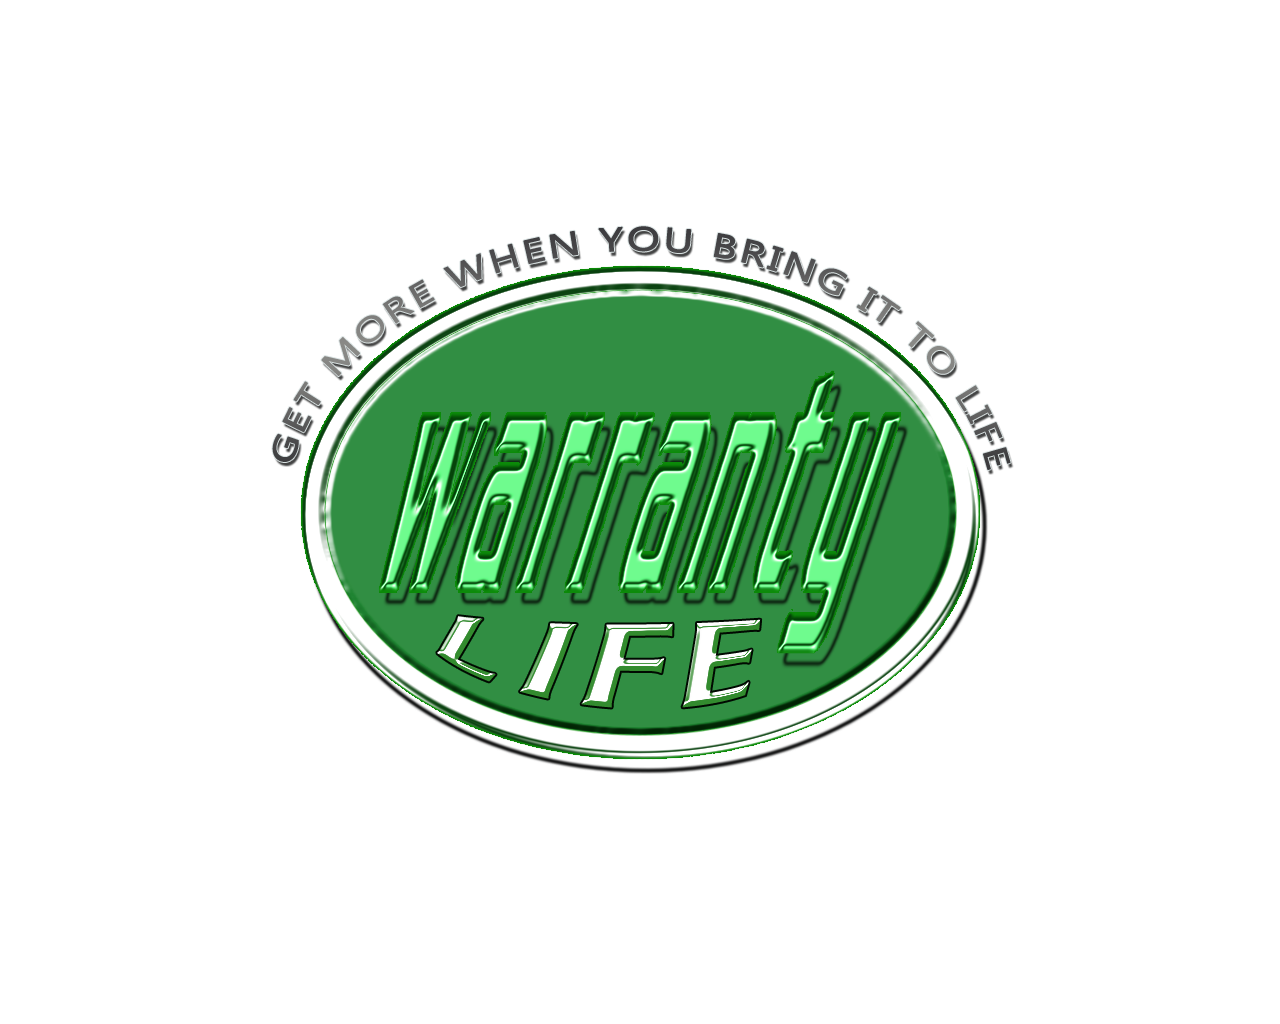 Logo Design by bolshoi_booze - Entry No. 9 in the Logo Design Contest WarrantyLife Logo Design.